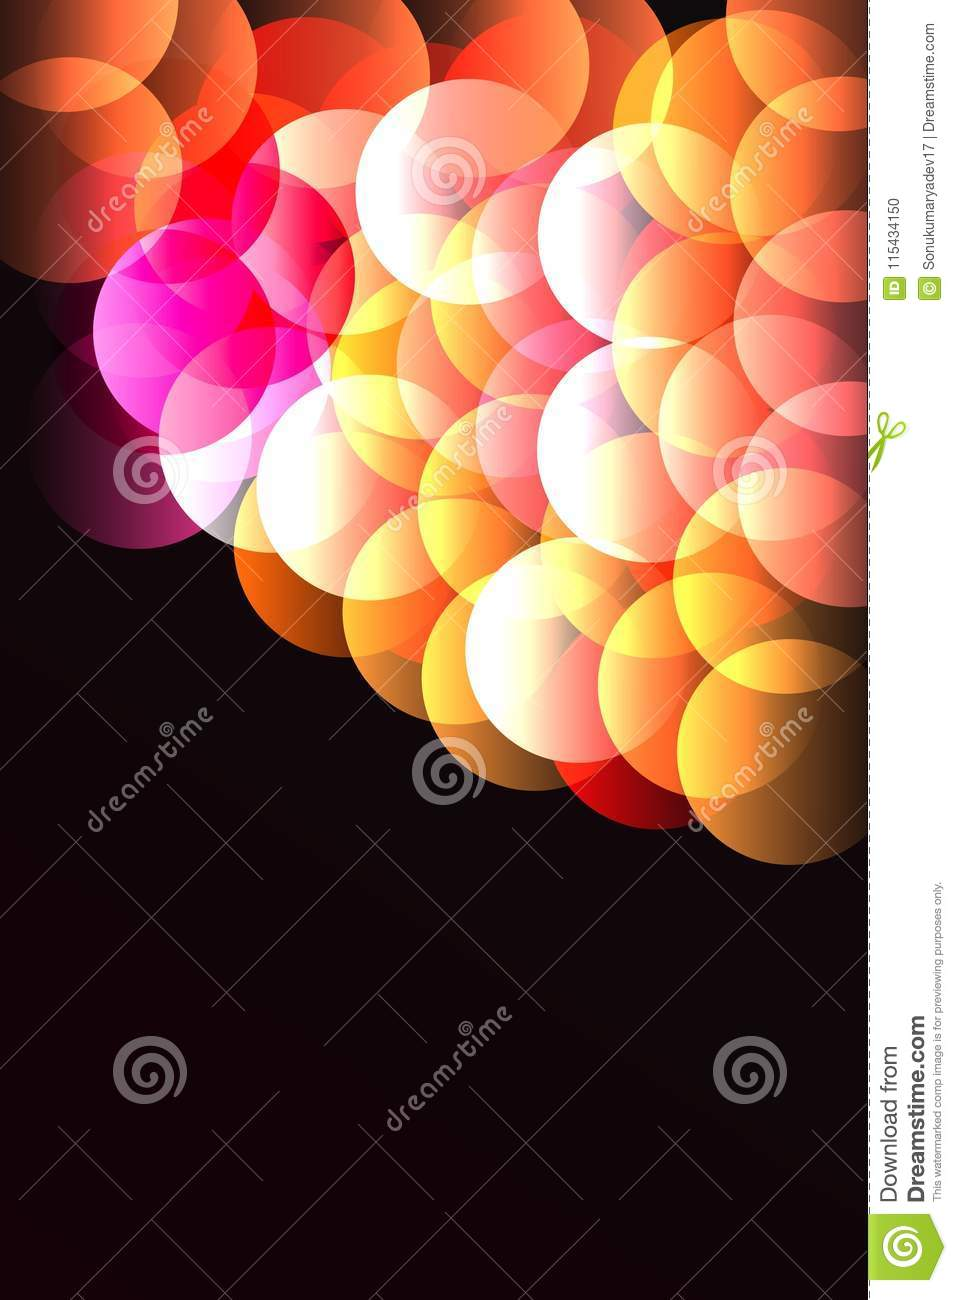 Phone Wallpaper Black Background And Red Colour Stock Vector Illustration Of Colour Collage 115434150